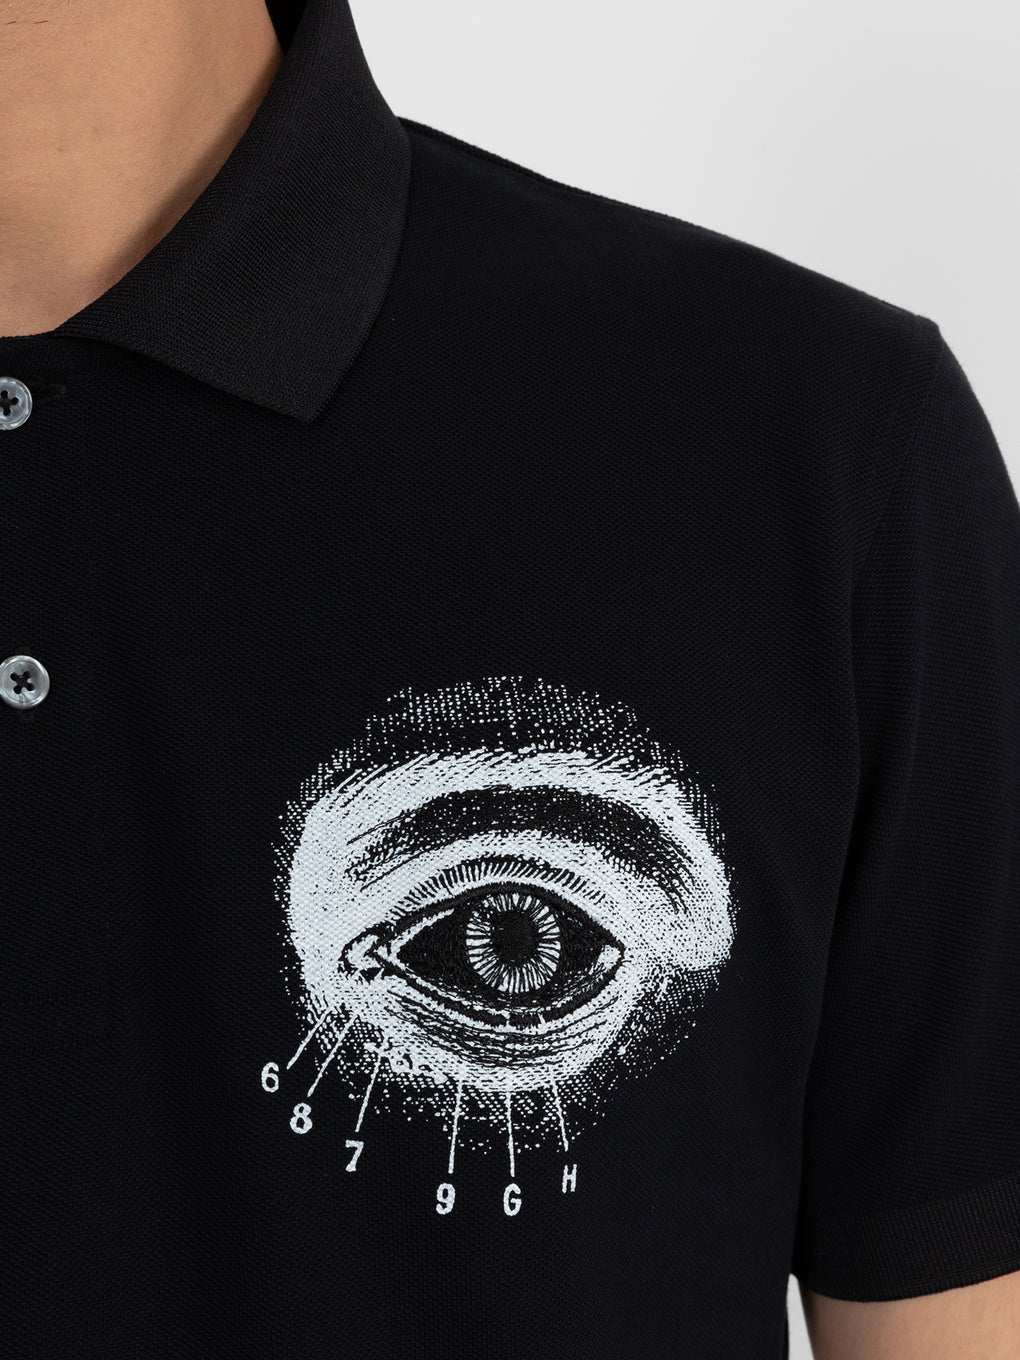 The Third Eye Polo